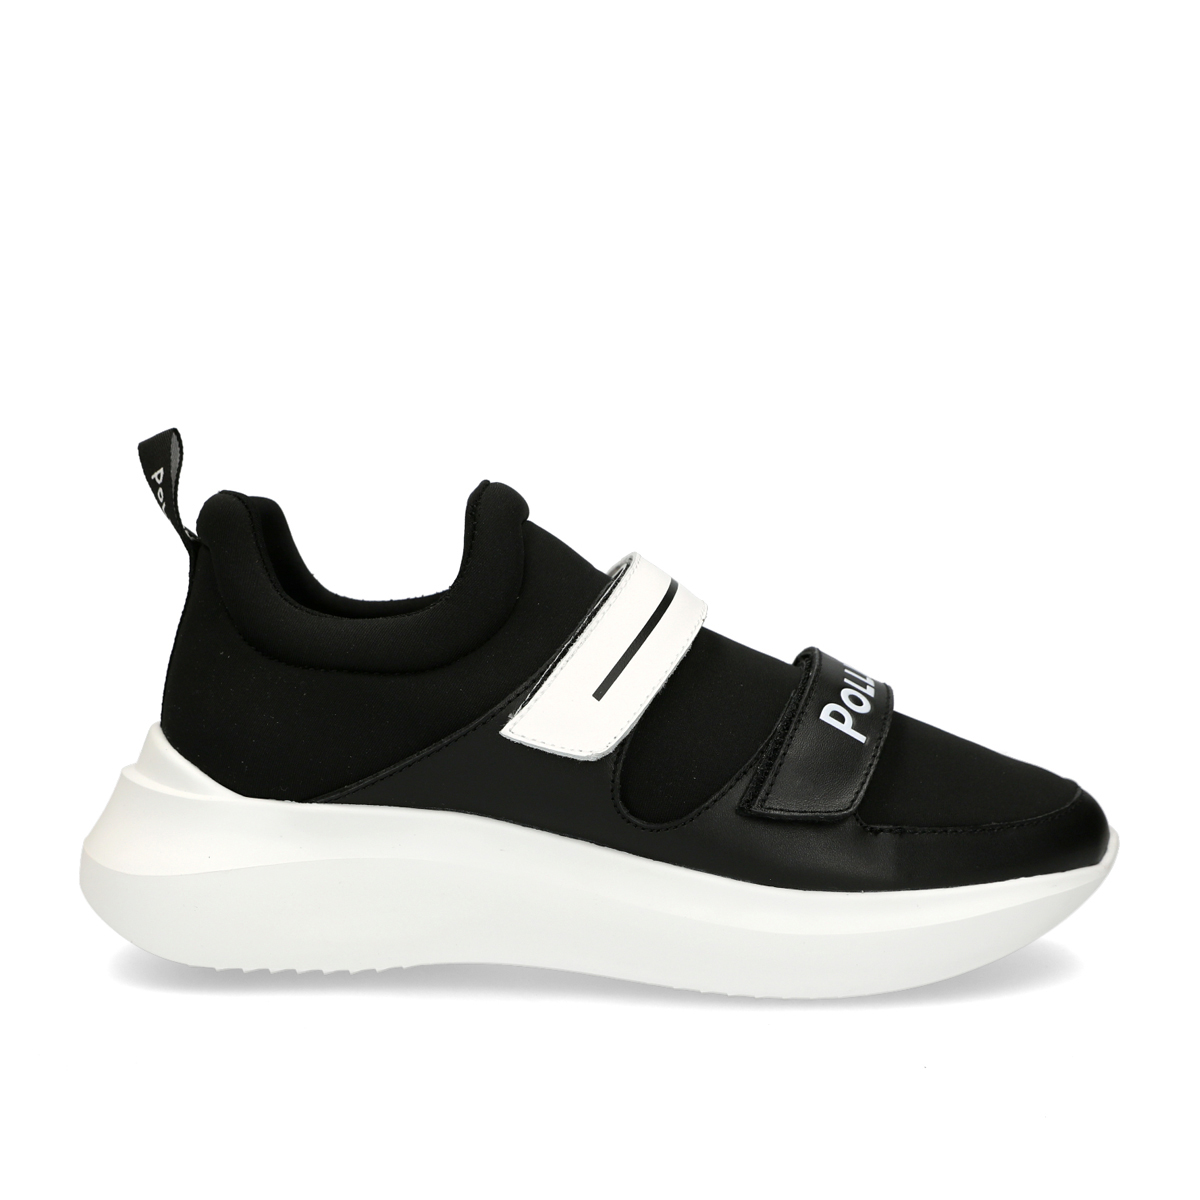 Freedom 50 Sneakers - Black